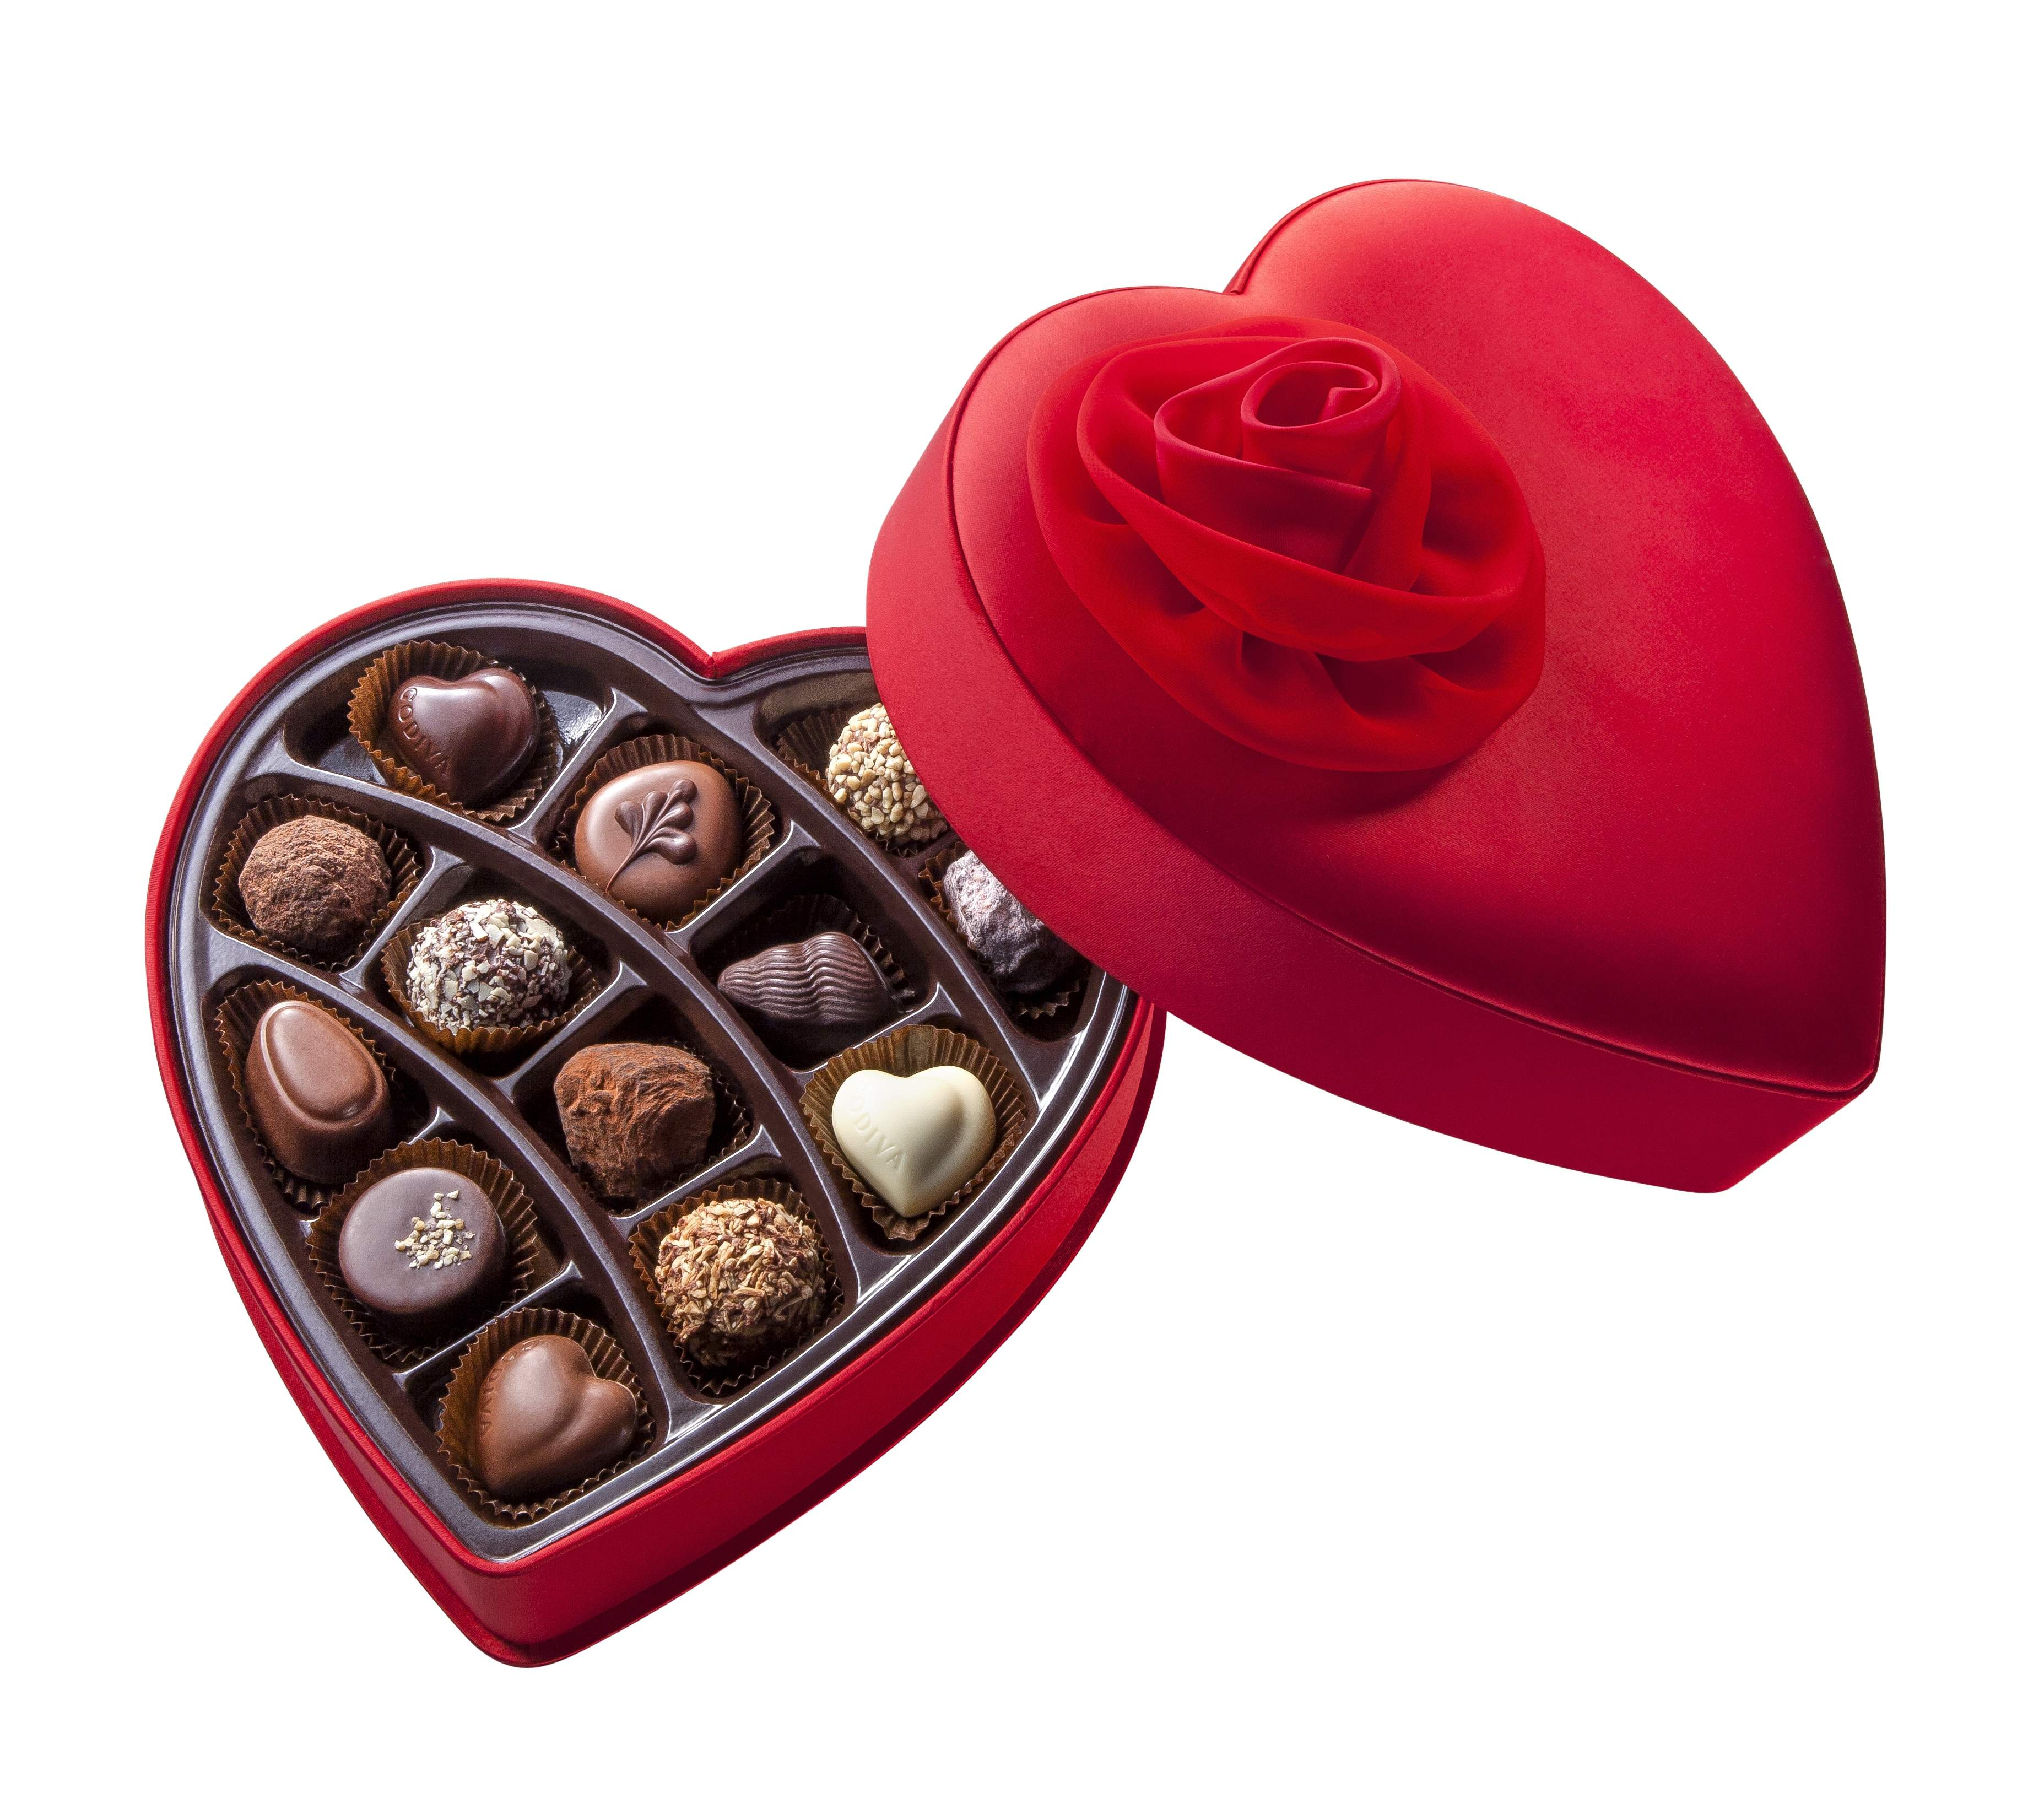 valeninte chocolates.jpg